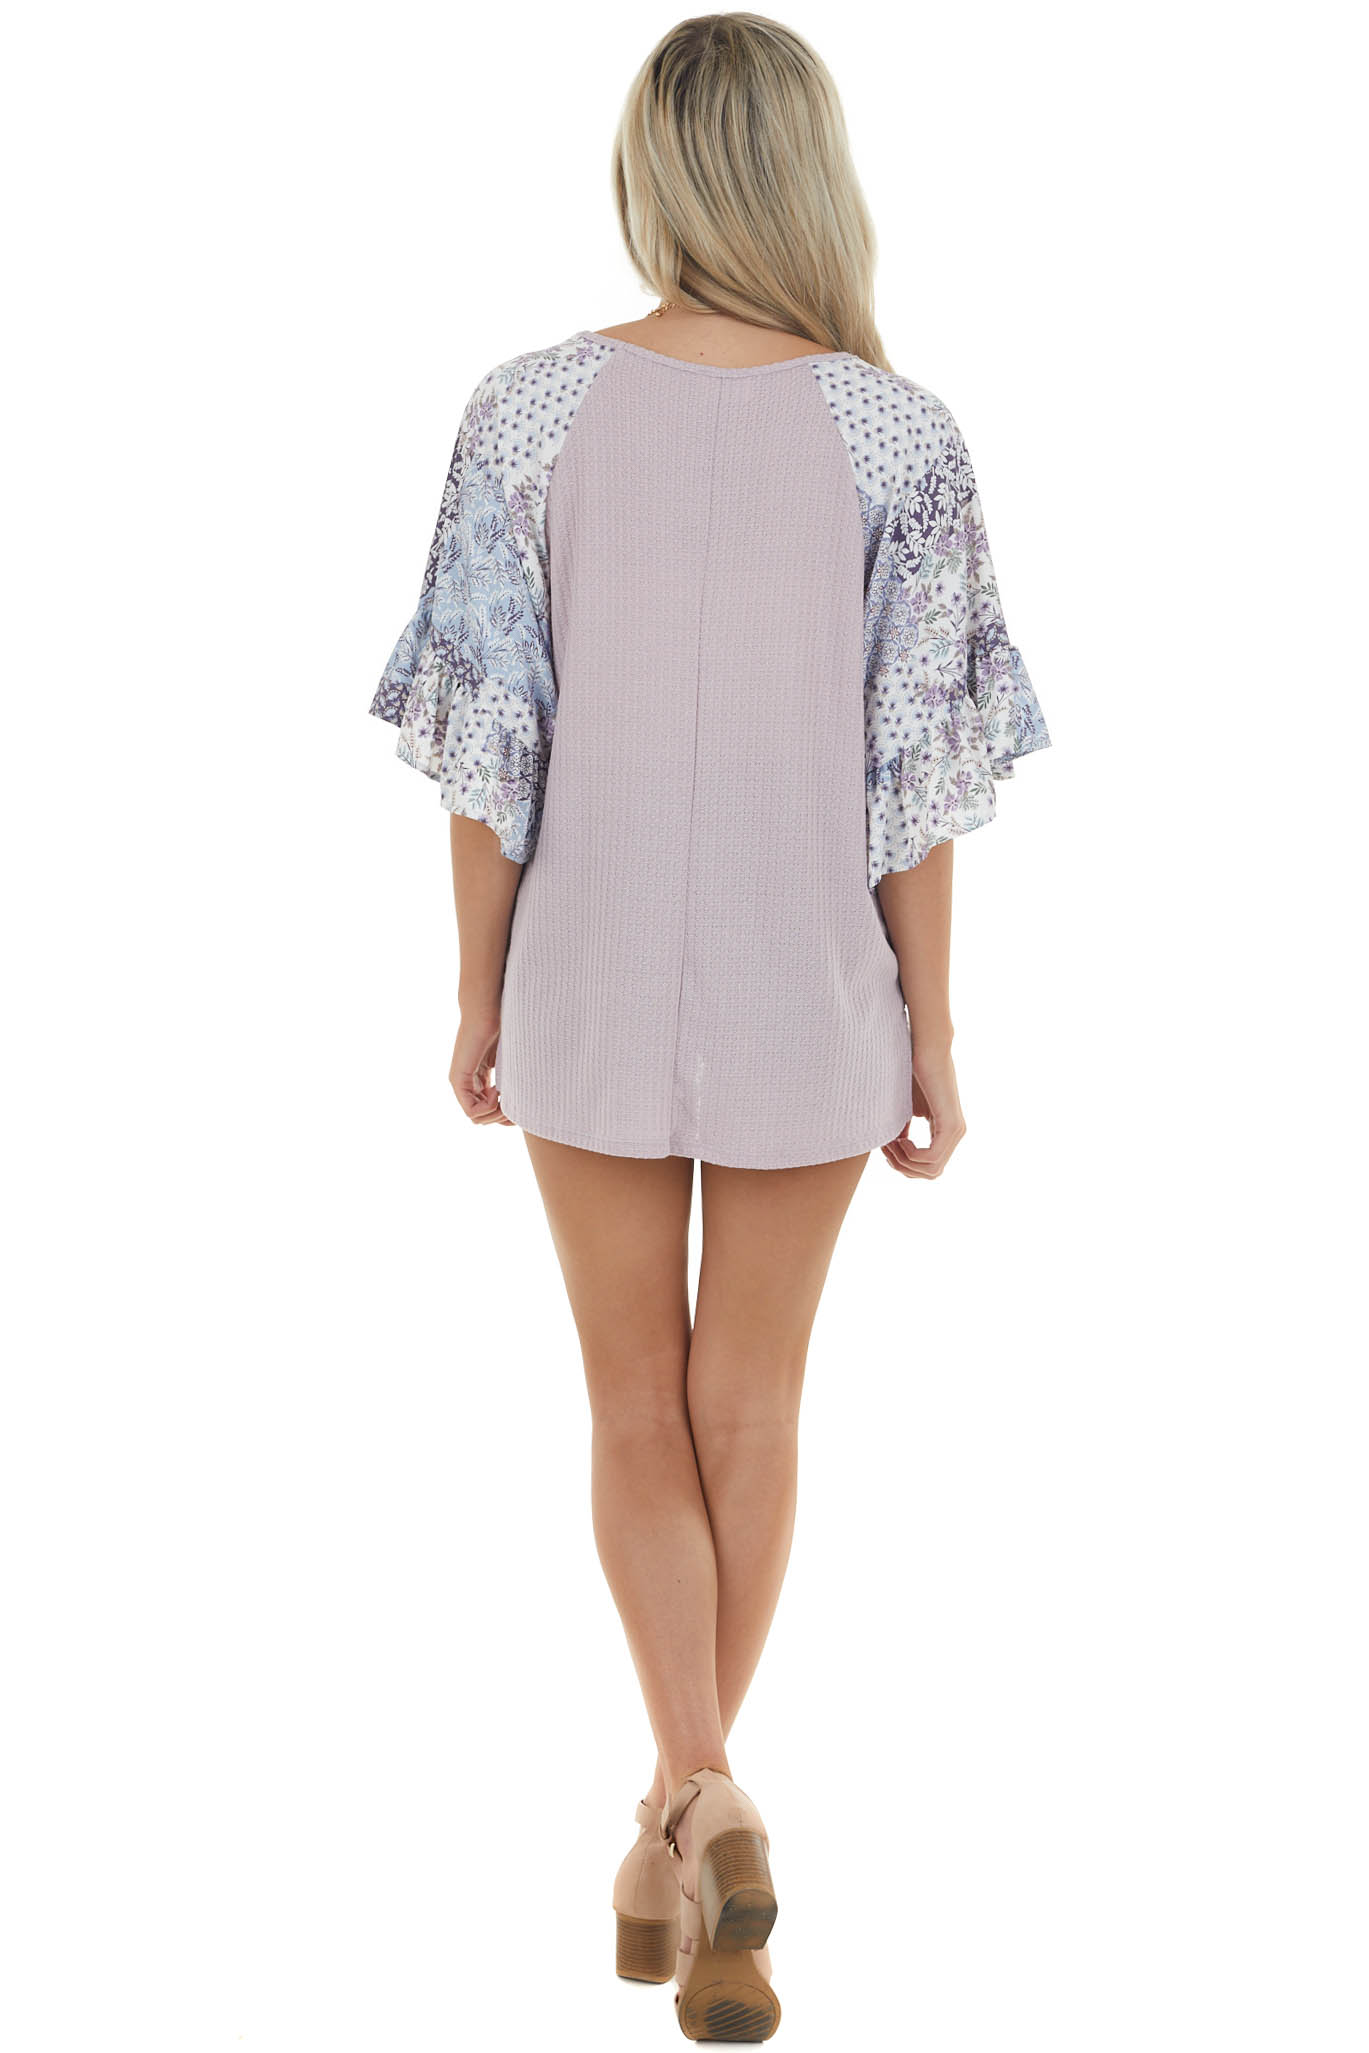 Thistle Waffle Knit Top with Short Contrasting Sleeves